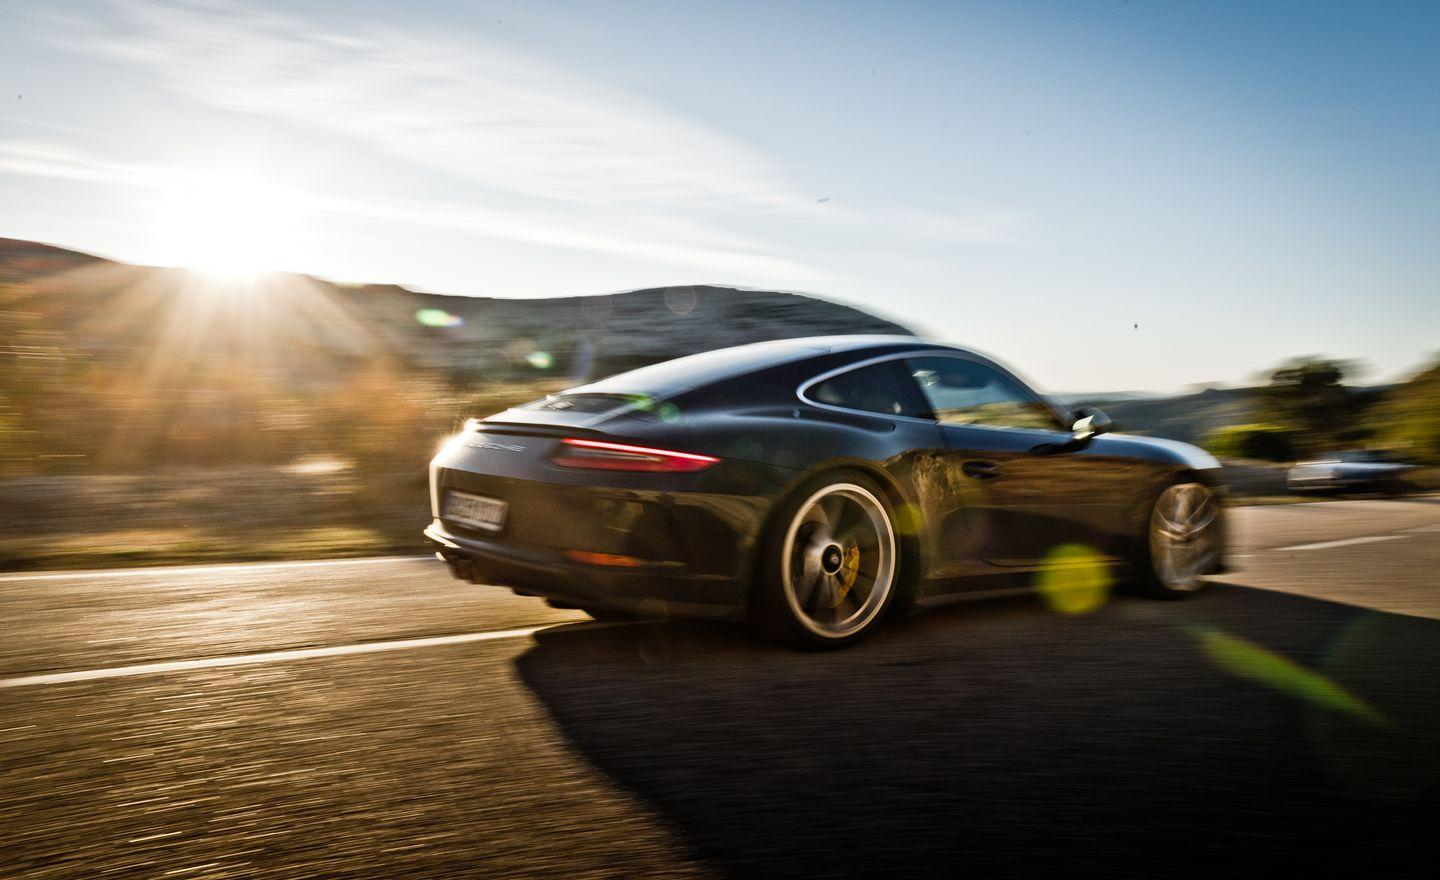 """<p>Basically <a href=""""https://www.caranddriver.com/reviews/a16767185/2018-porsche-911-gt3-with-touring-package-first-drive-review/"""" rel=""""nofollow noopener"""" target=""""_blank"""" data-ylk=""""slk:a wingless, more civilized 911 GT3"""" class=""""link rapid-noclick-resp"""">a wingless, more civilized 911 GT3</a>, the 2018 <a href=""""https://www.caranddriver.com/porsche/911-gt3-gt3-rs"""" rel=""""nofollow noopener"""" target=""""_blank"""" data-ylk=""""slk:Porsche 911 GT3 Touring"""" class=""""link rapid-noclick-resp"""">Porsche 911 GT3 Touring</a> opens our list with a wide-open-throttle sound level of 95 decibels, comparable to the sound a subway train makes from 200 feet away. These glorious decibels are blasted into the cabin by a 500-hp 4.0-liter flat-six that revs to 9000 rpm.</p>"""